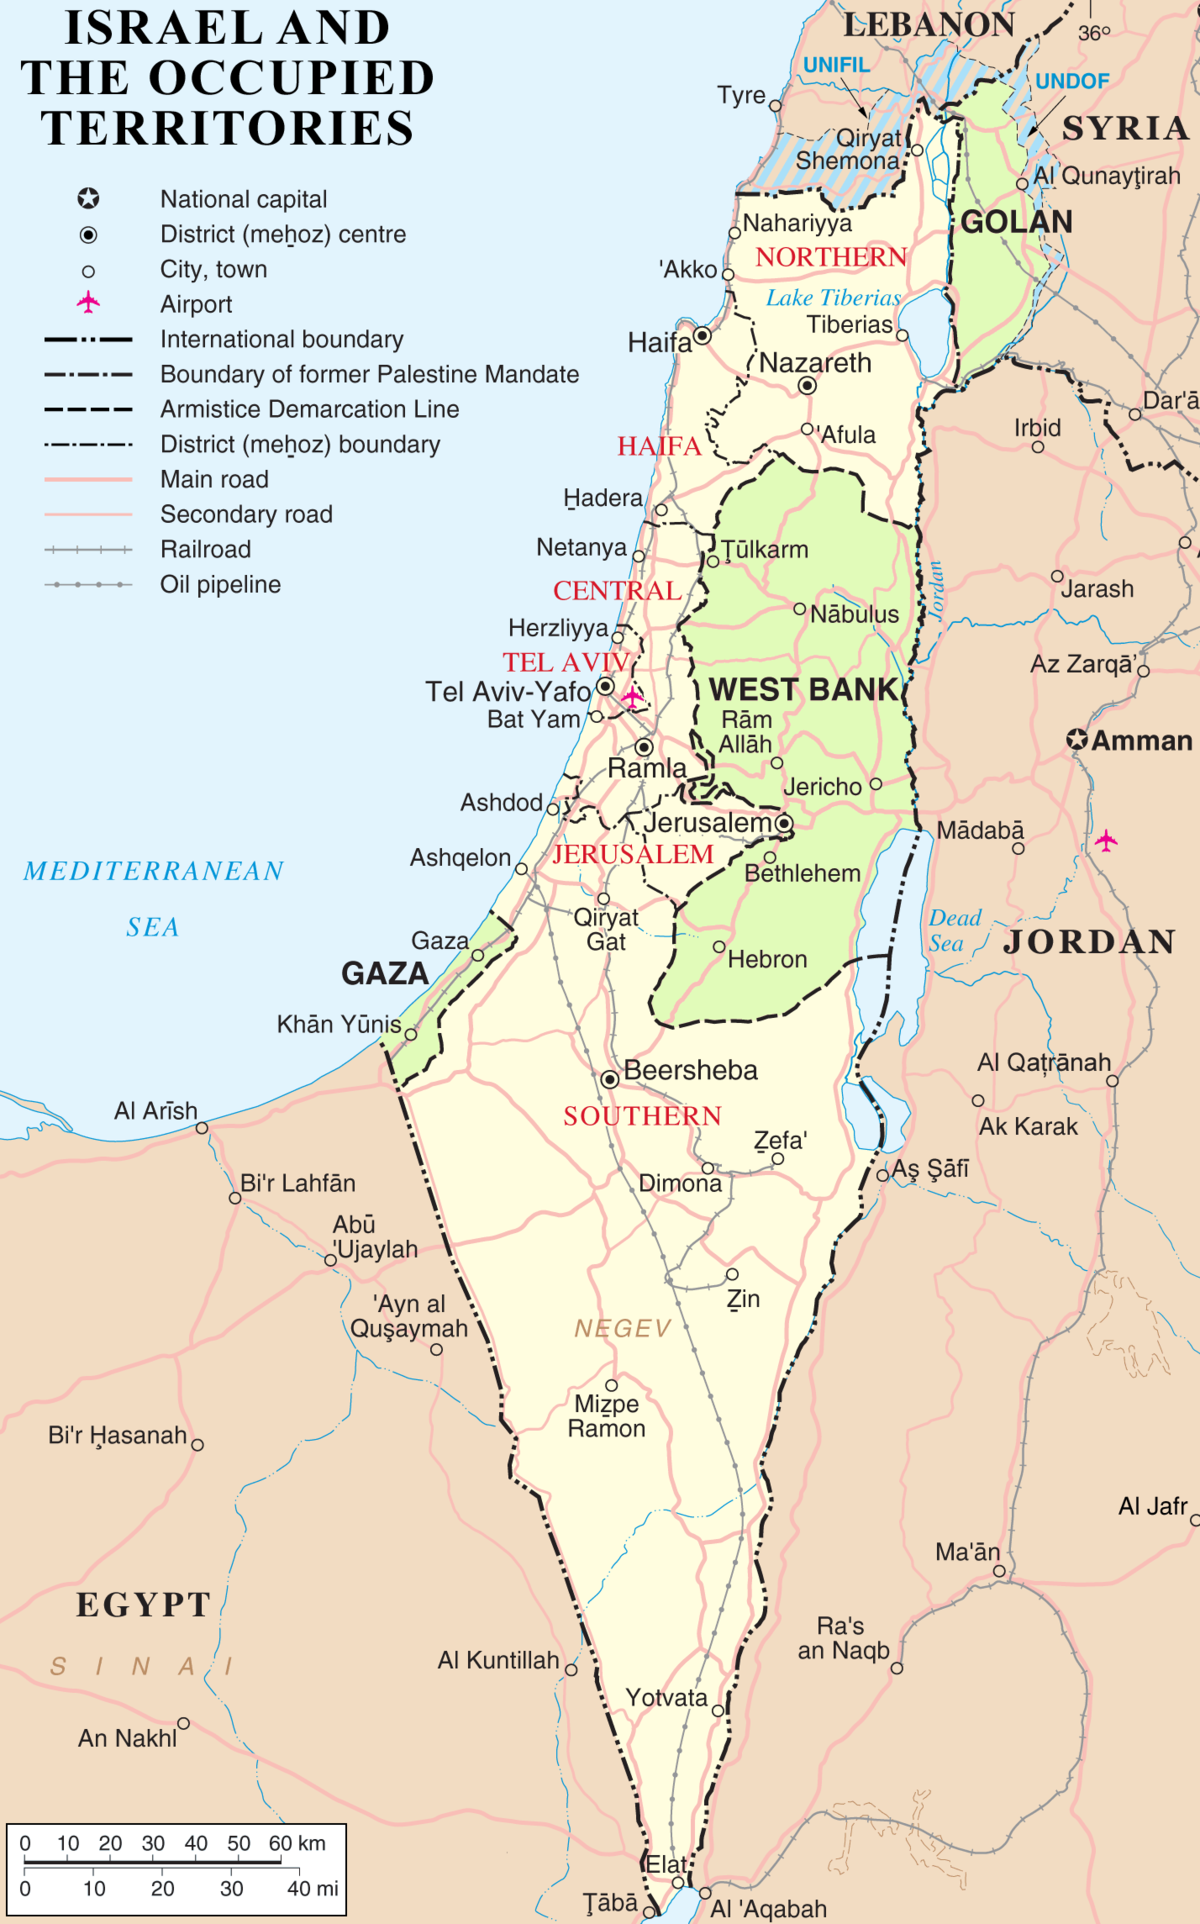 https://upload.wikimedia.org/wikipedia/commons/thumb/f/f5/Israel_and_occupied_territories_map.png/1200px-Israel_and_occupied_territories_map.png